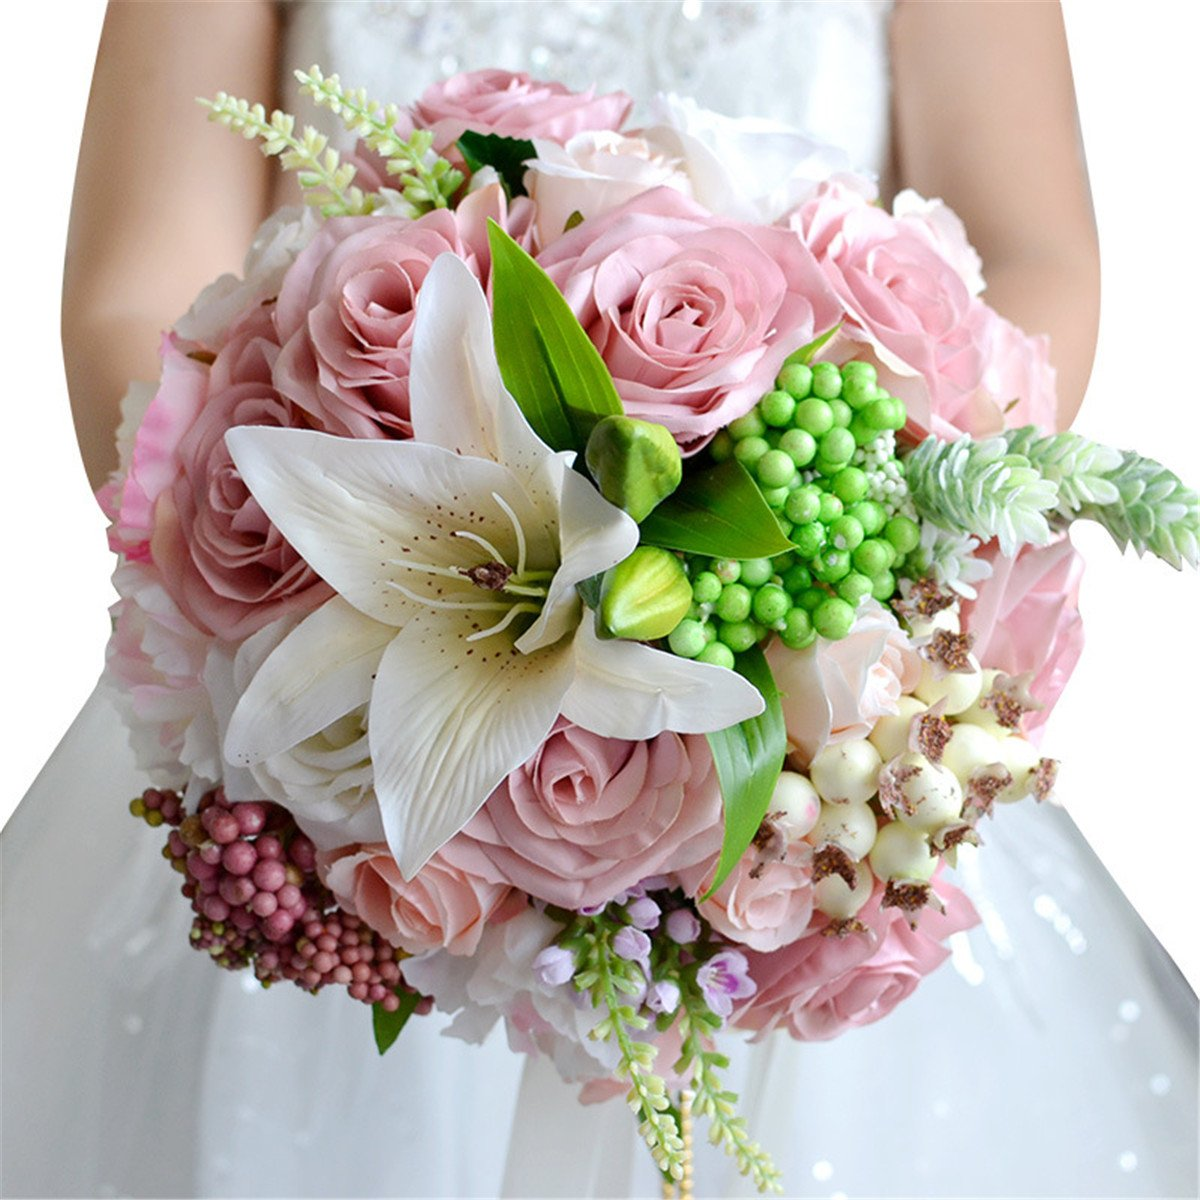 Zebratown 9'' Artificial Calla Lily Bunch Flower Pink Rose Wedding Bouquet Party Home Decor (Pink) by Zebratown